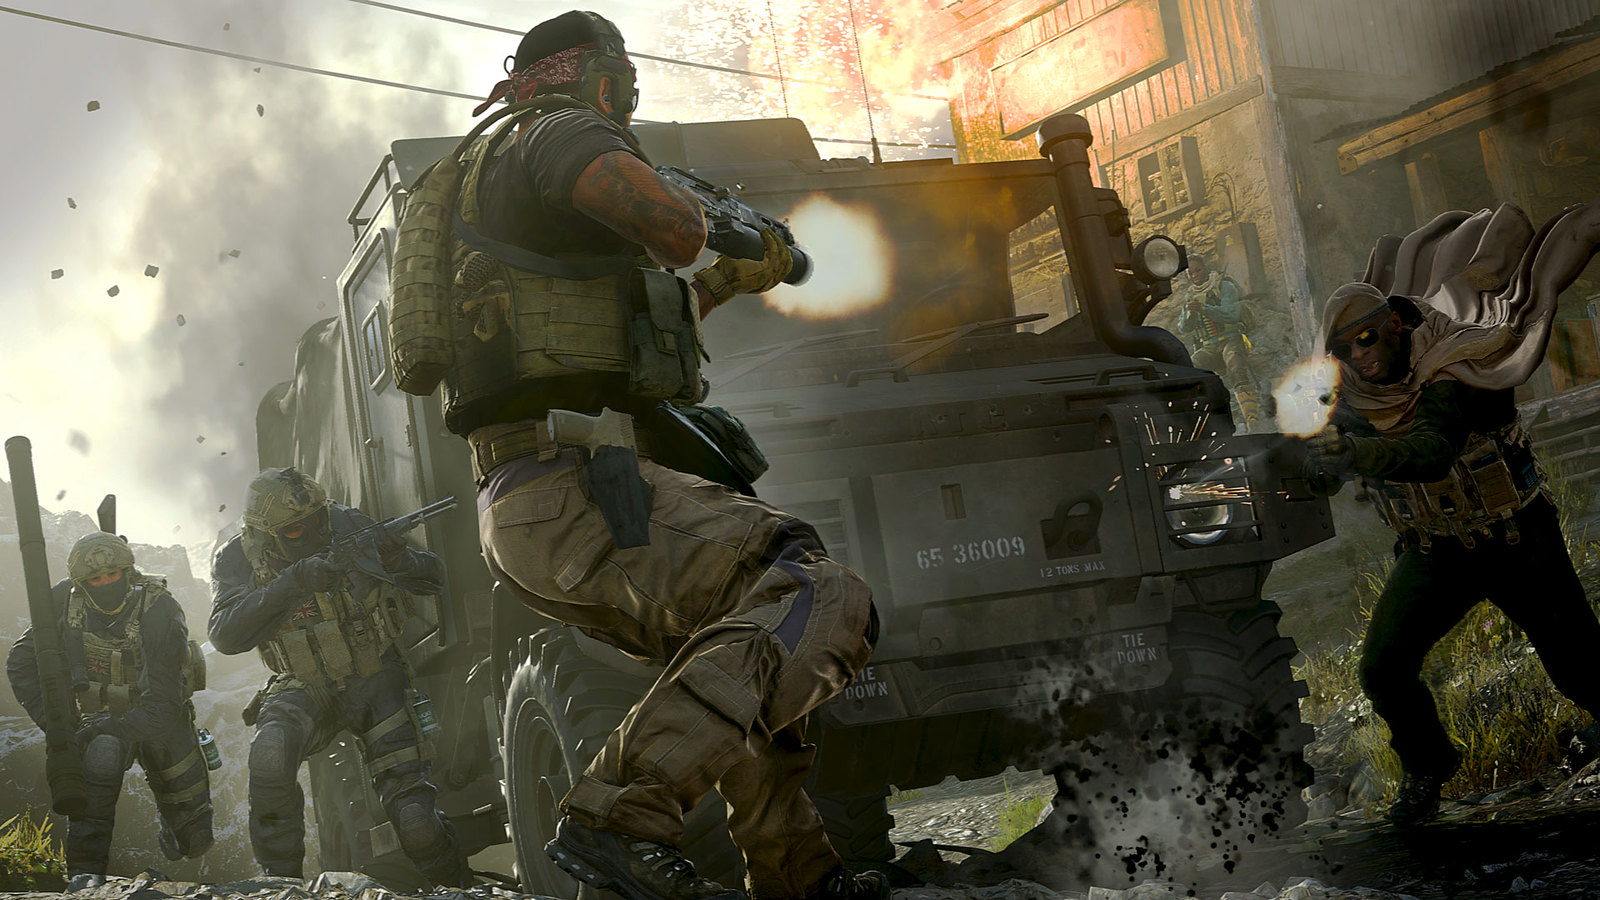 Call of Duty: Modern Warfare patch fixes bug allowing players to use unearned attachments - VG247